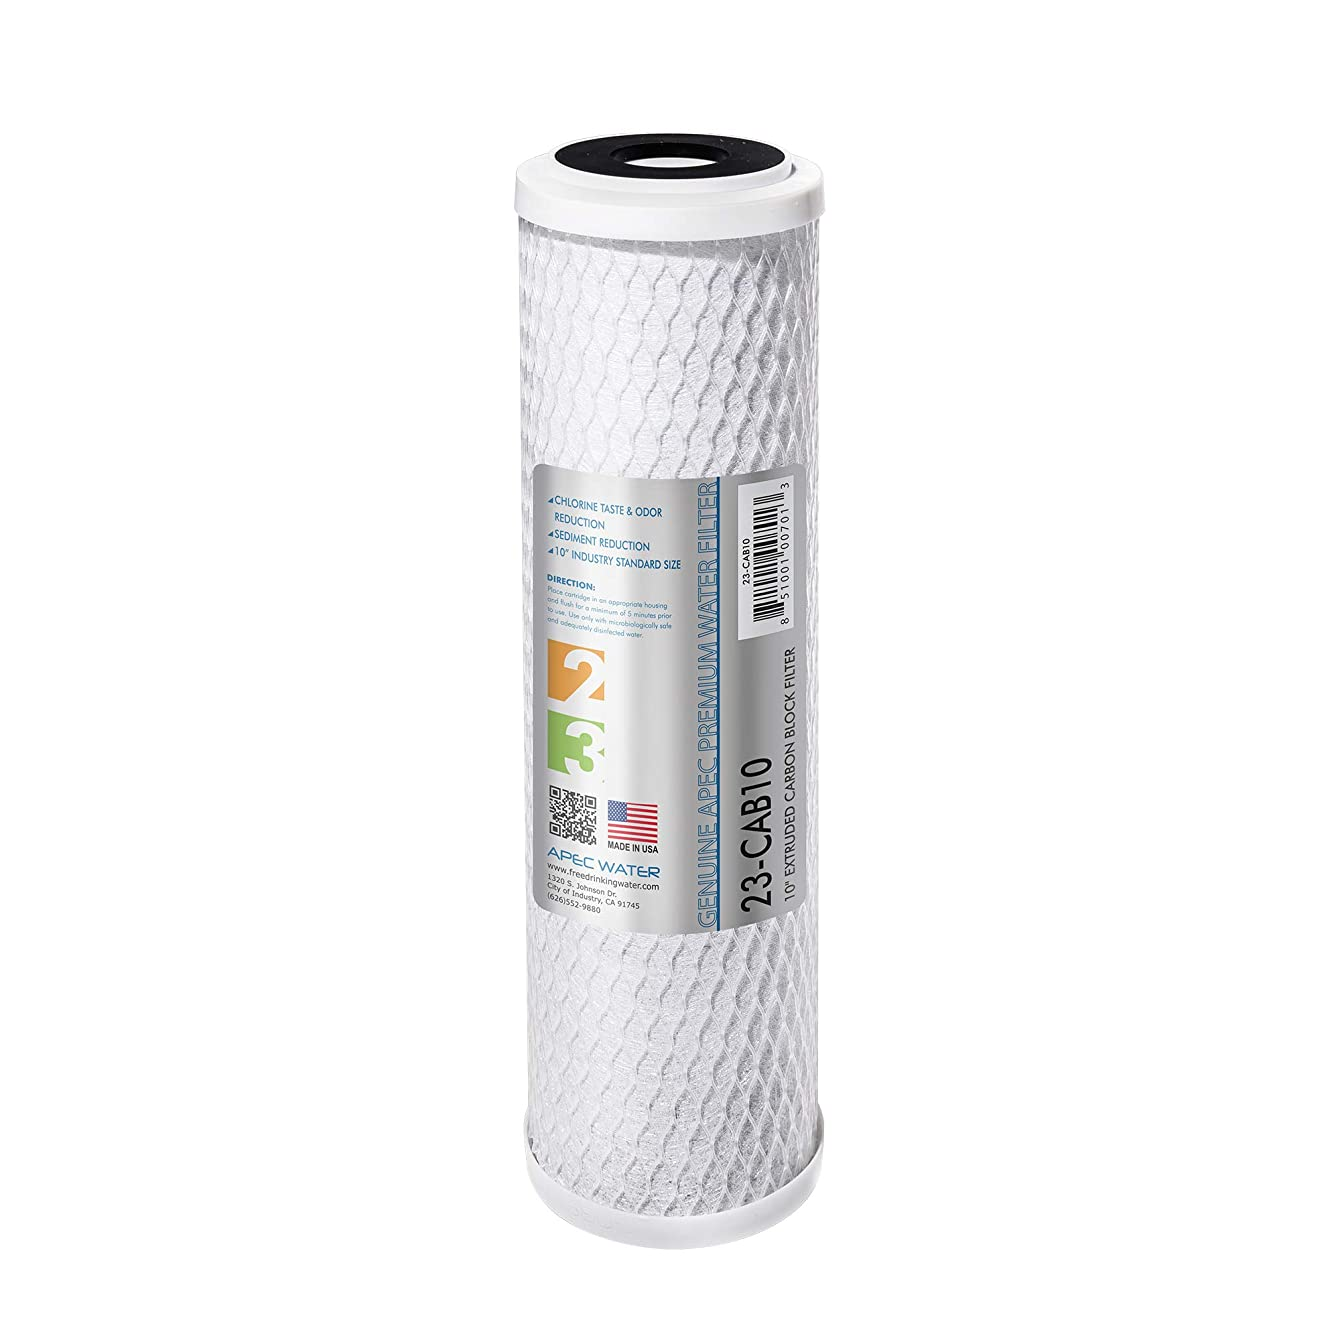 "APEC 23-CAB10 US MADE 10"" x 2.5"" Carbon Block Water Filter For Reverse Osmosis System"